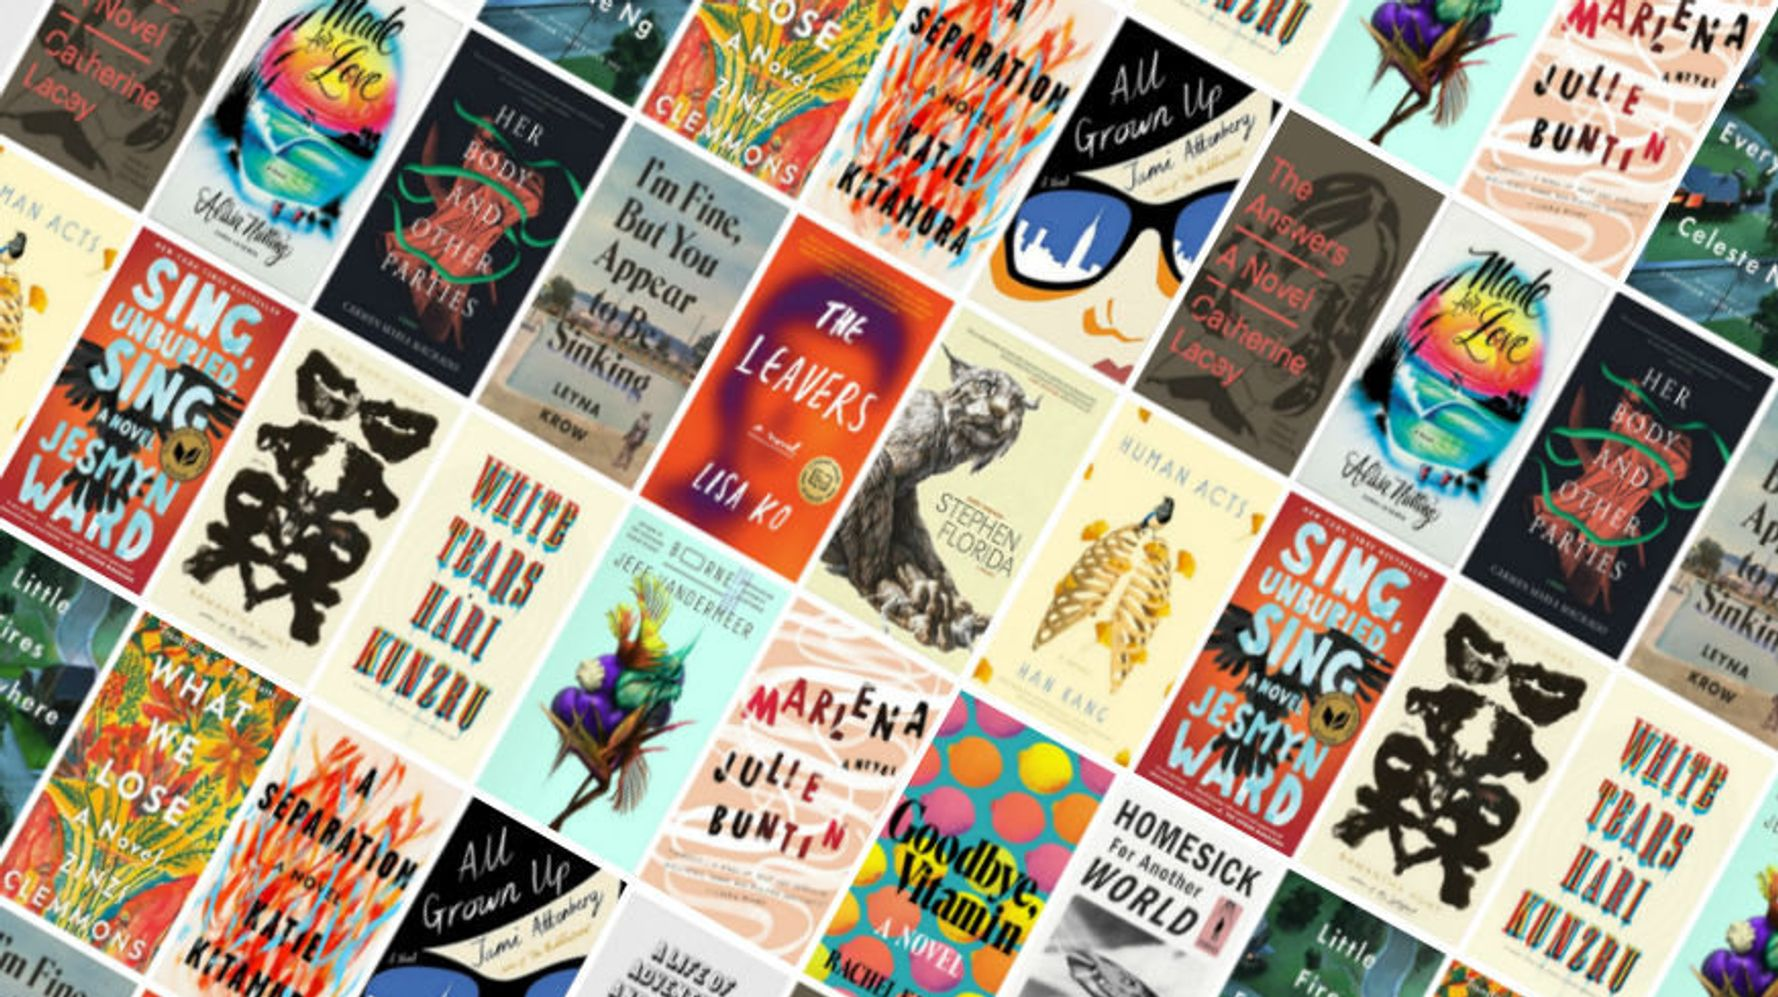 The Best Fiction Books Of 2017 | HuffPost